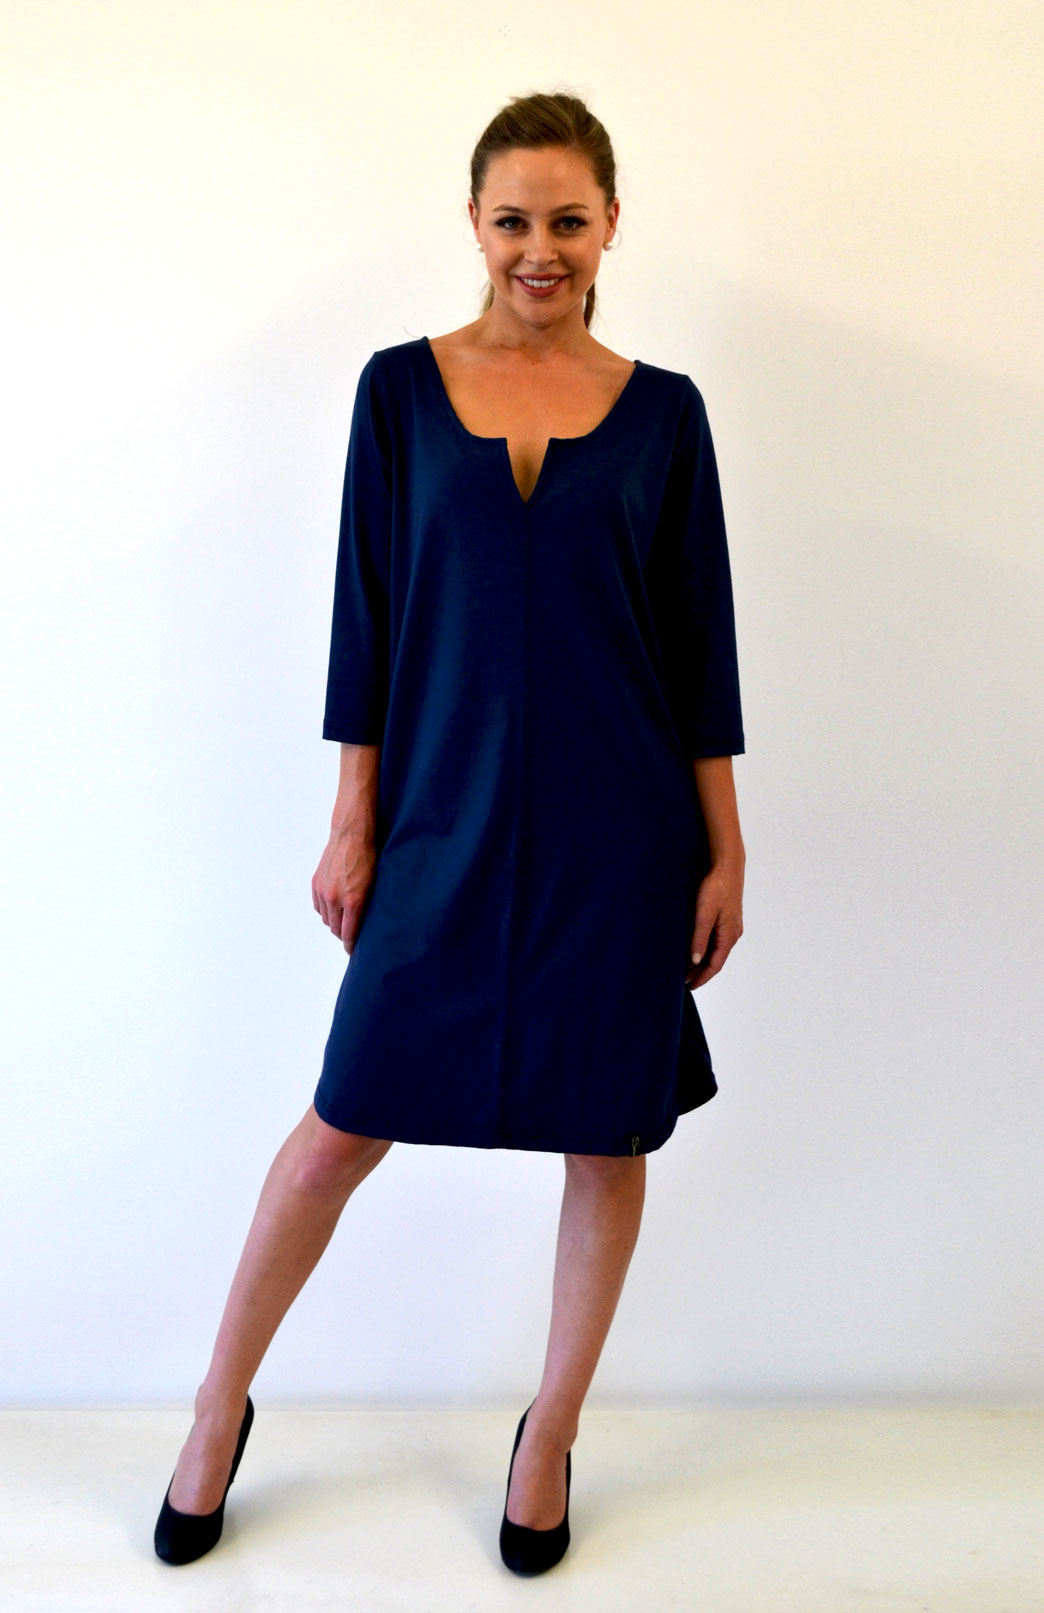 Shift Dress - Heavyweight - Women's Pure Merino Wool Heavyweight Black Shift Dress with V-Neckline - Smitten Merino Tasmania Australia